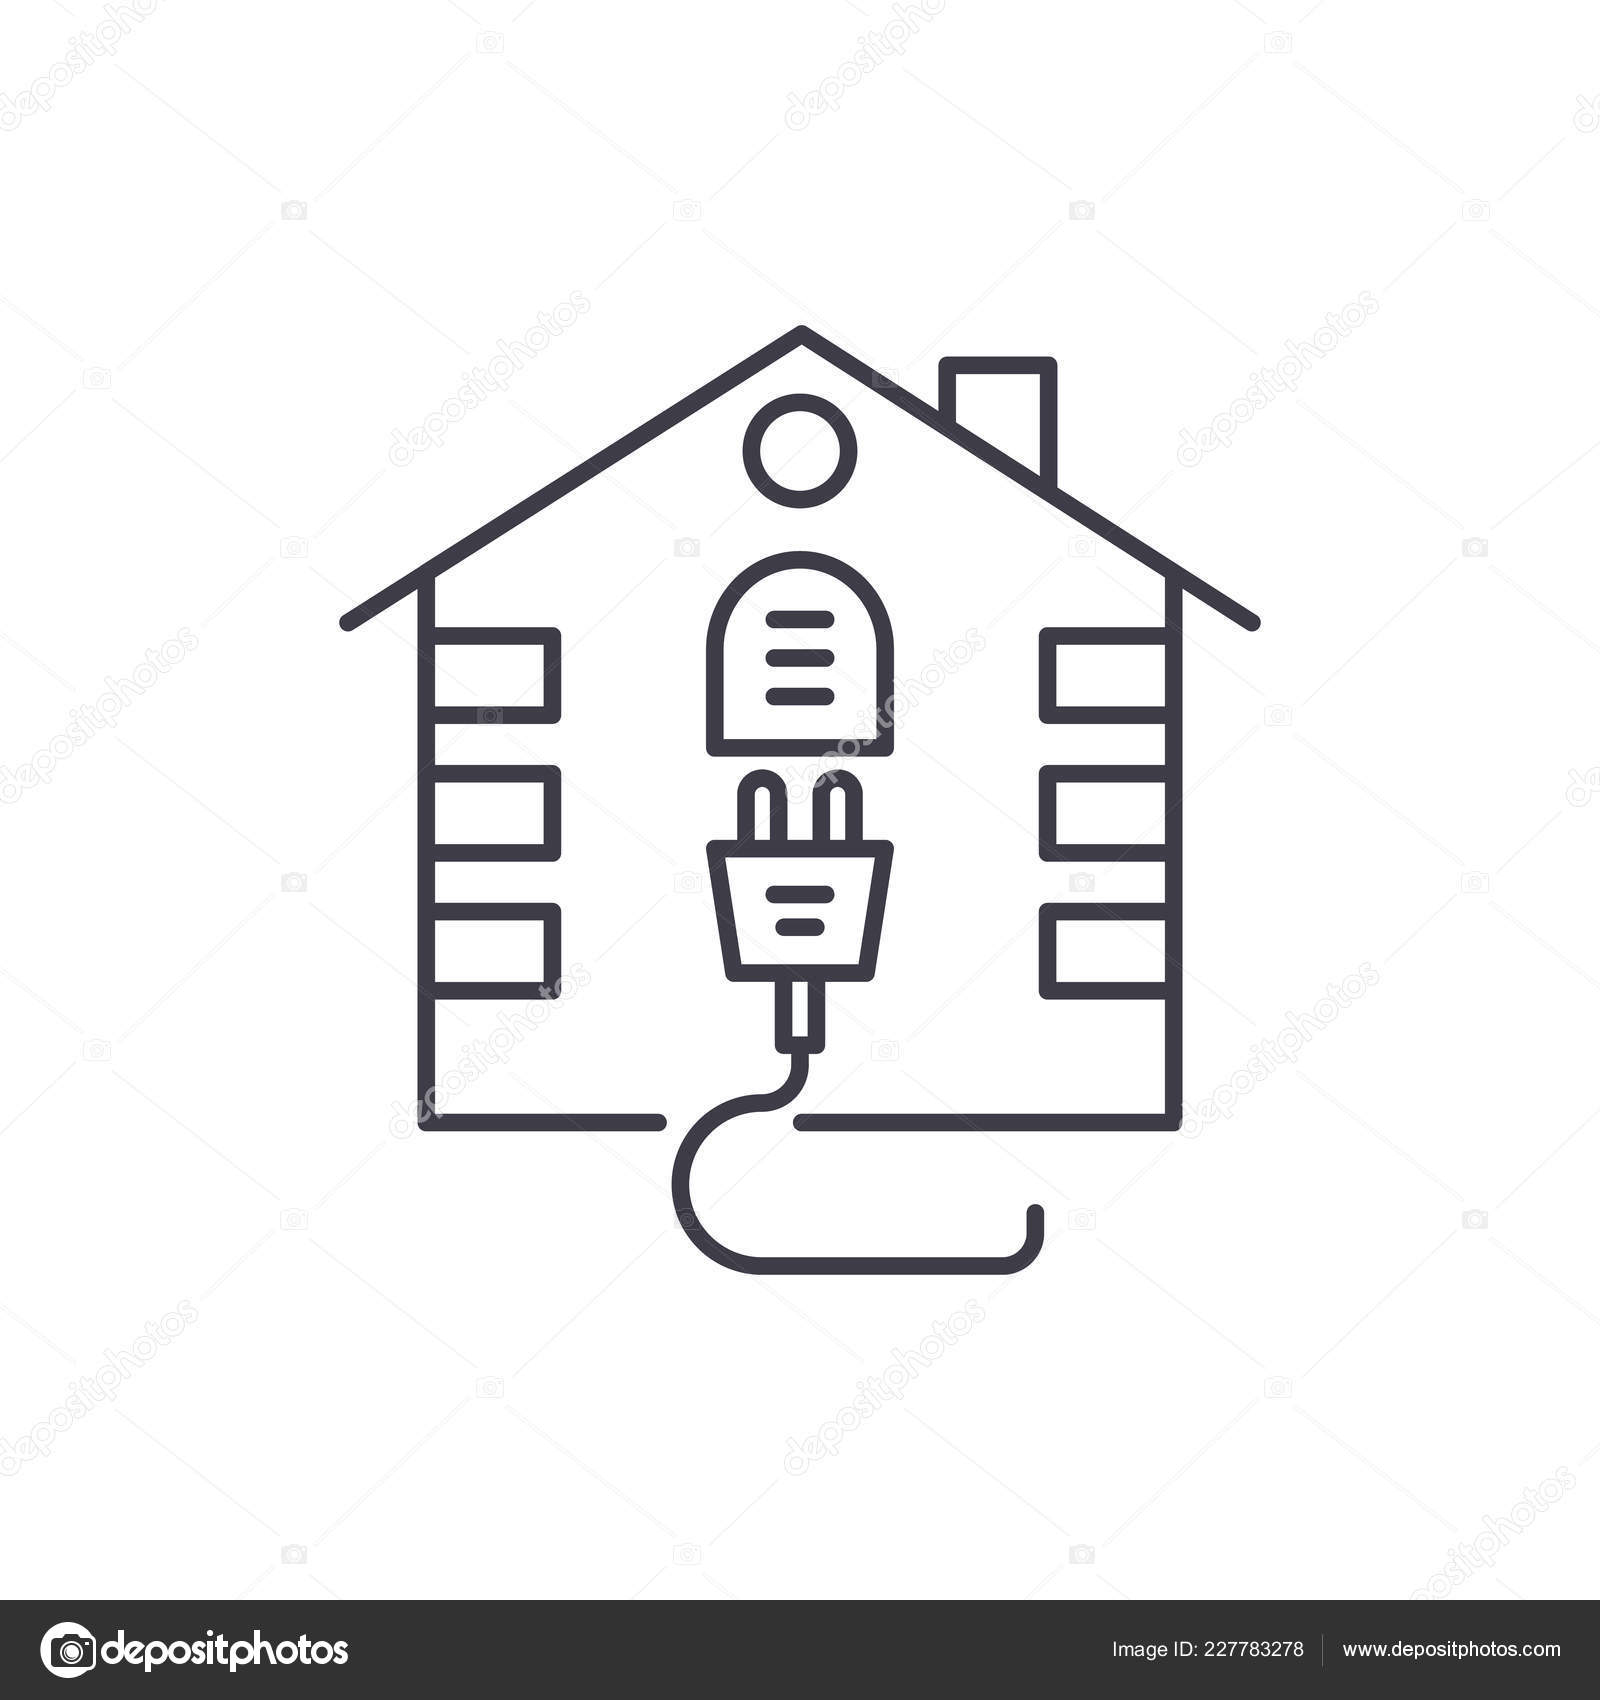 House Electrical Symbols Electrical Wiring Symbols House Electrical